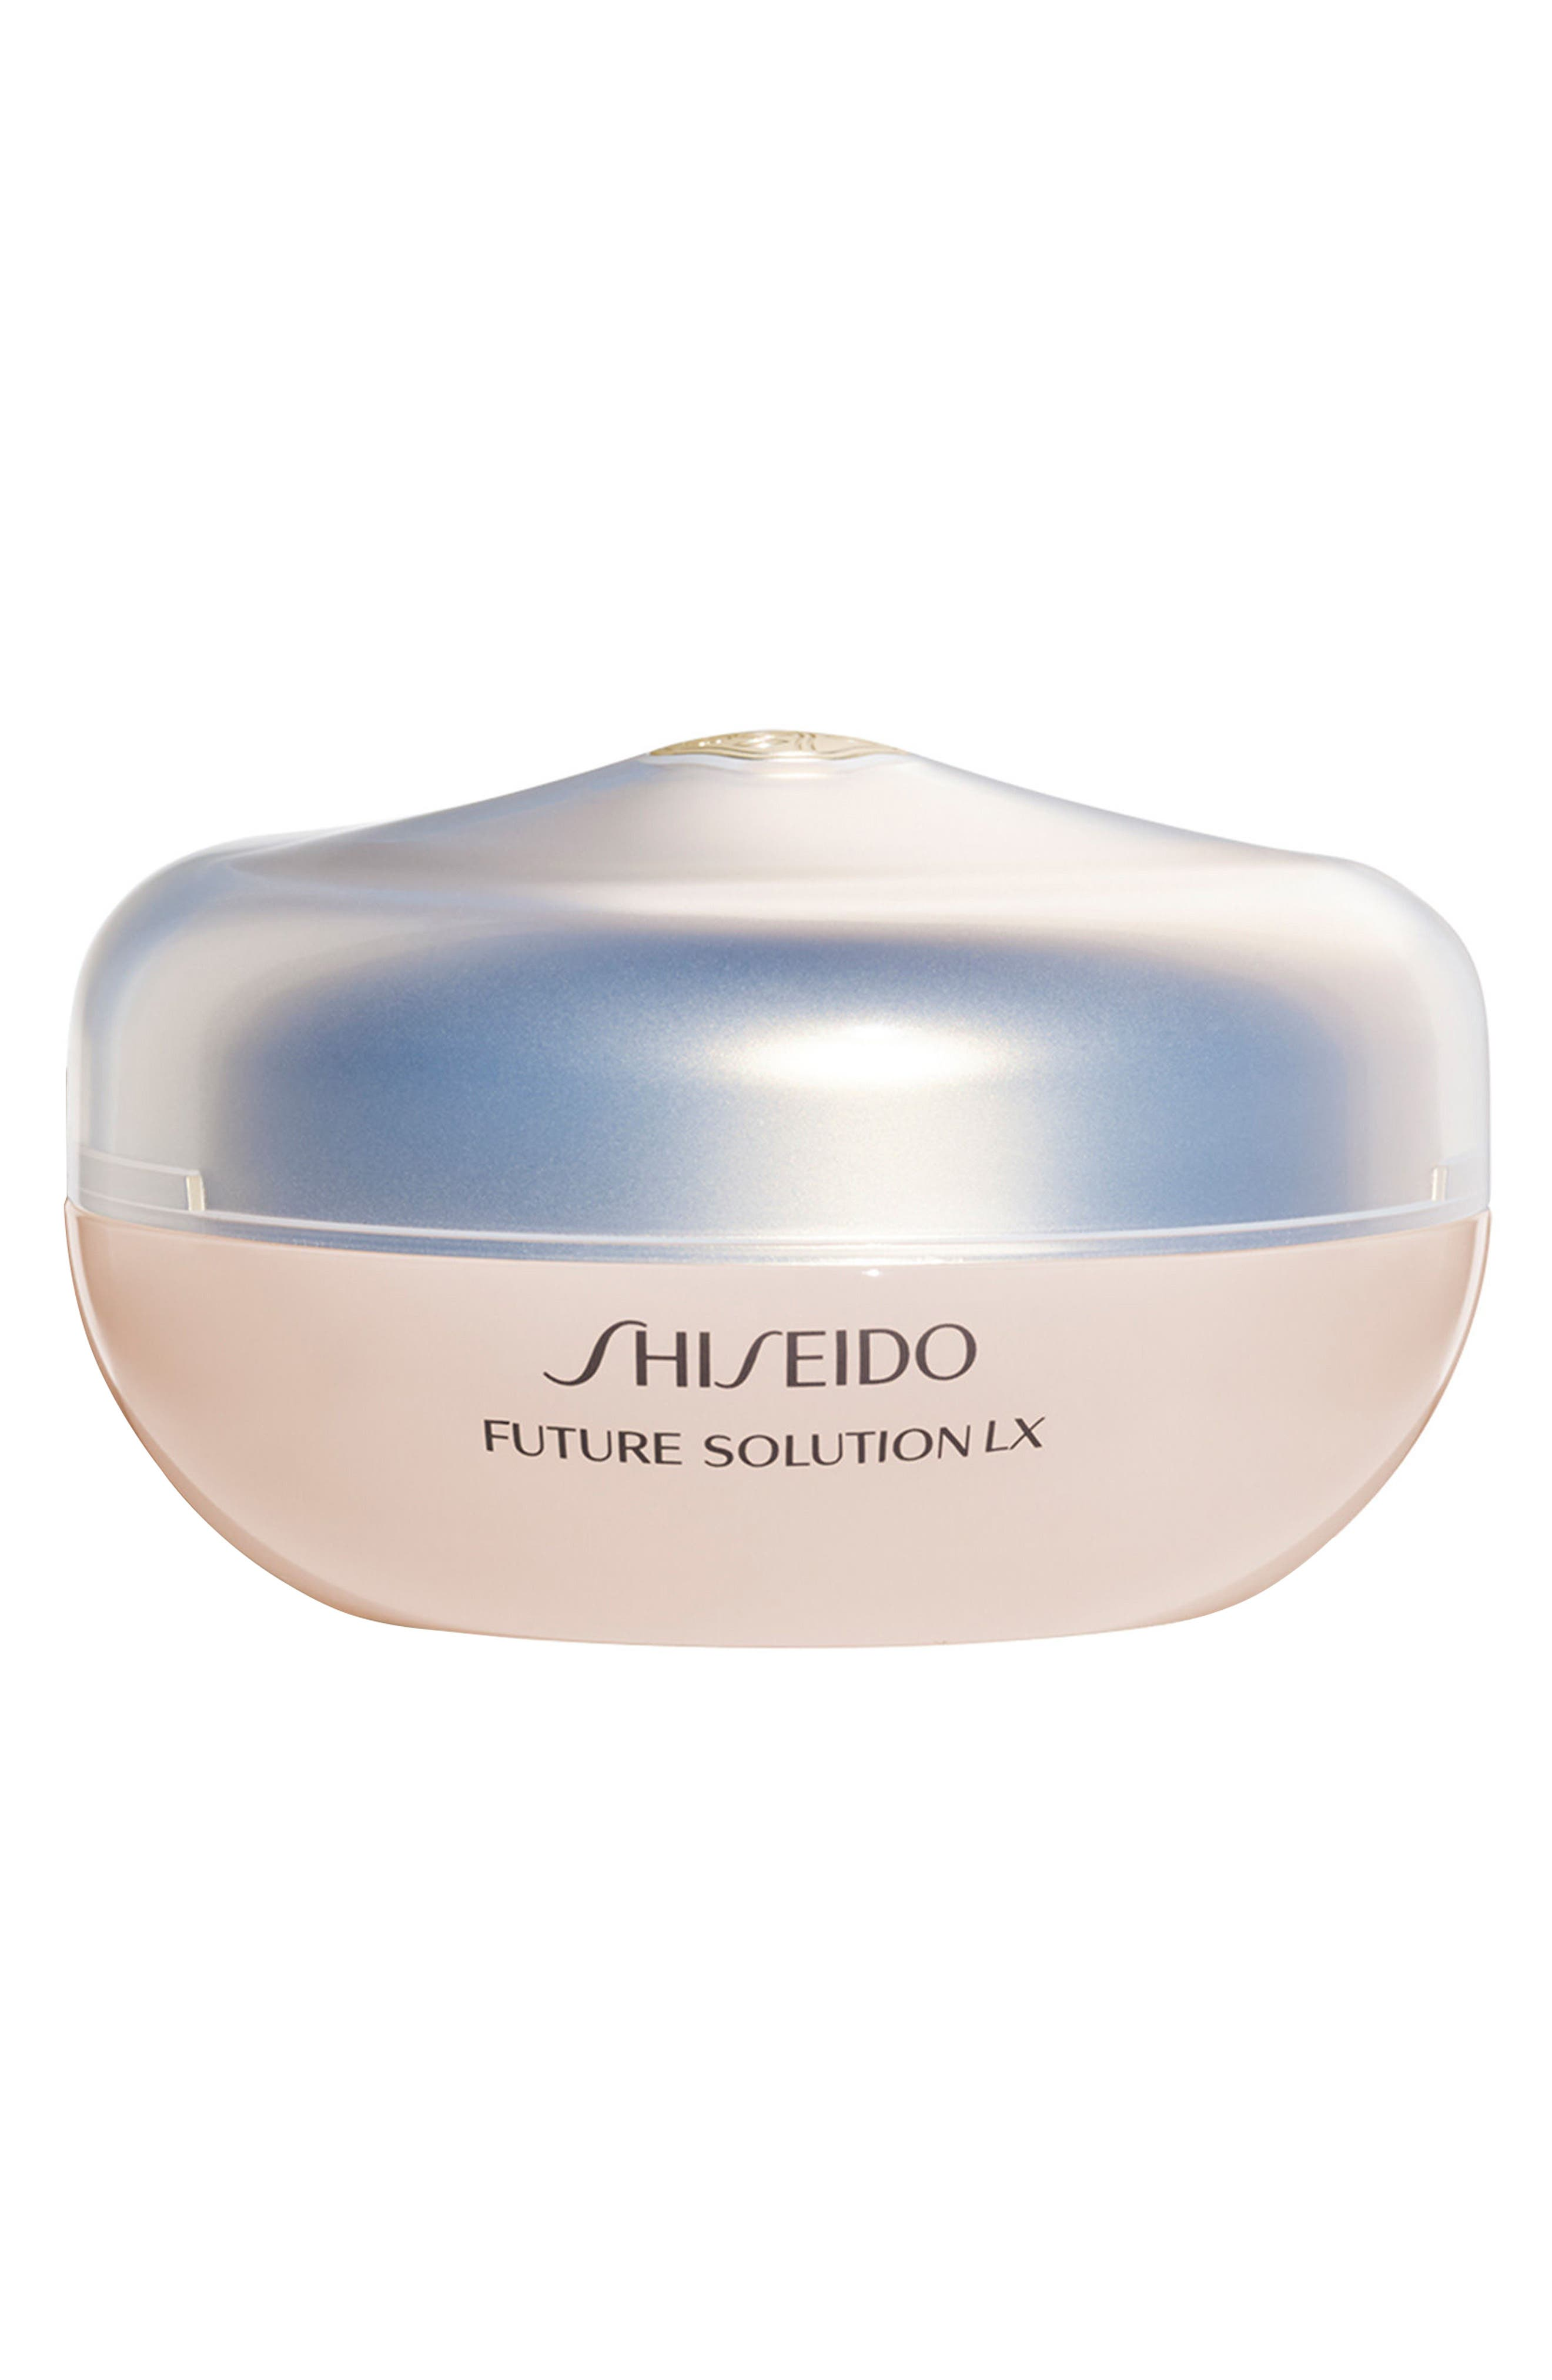 Shiseido Future Solution LX Total Radiance Loose Powder (Nordstrom Exclusive)